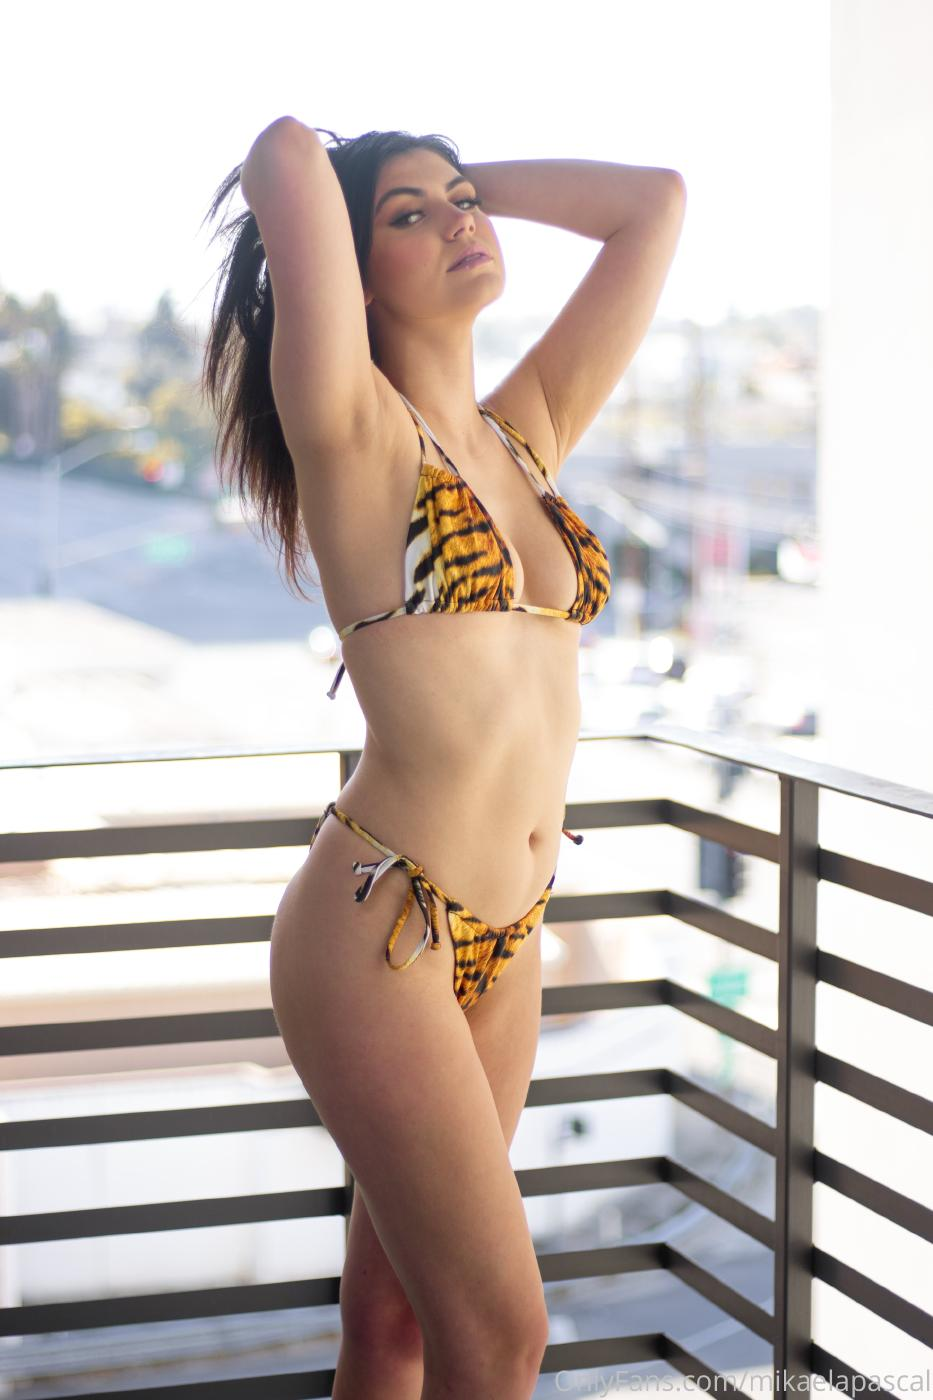 Mikaela Pascal Nude Tiger Bikini Photos Leaked 0003